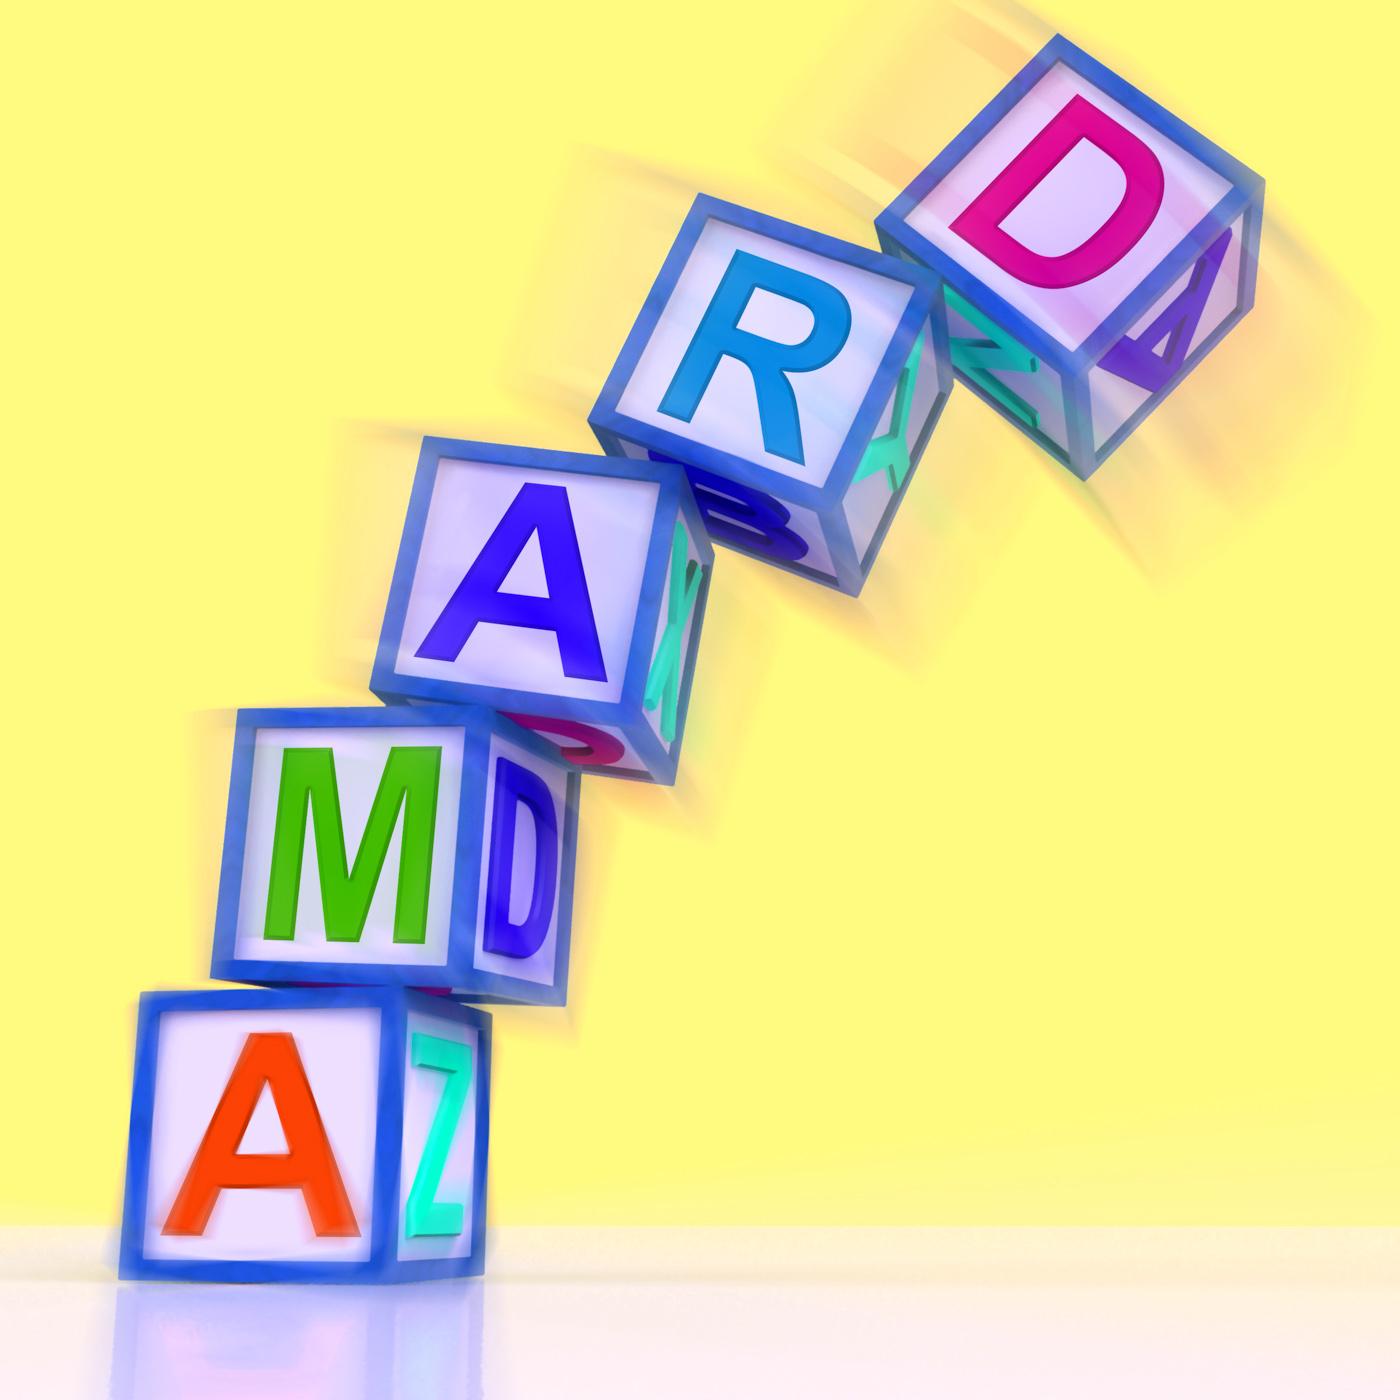 Drama Word Show Acting Play Or Theatre, Acting, Actor, Actress, Blocks, HQ Photo